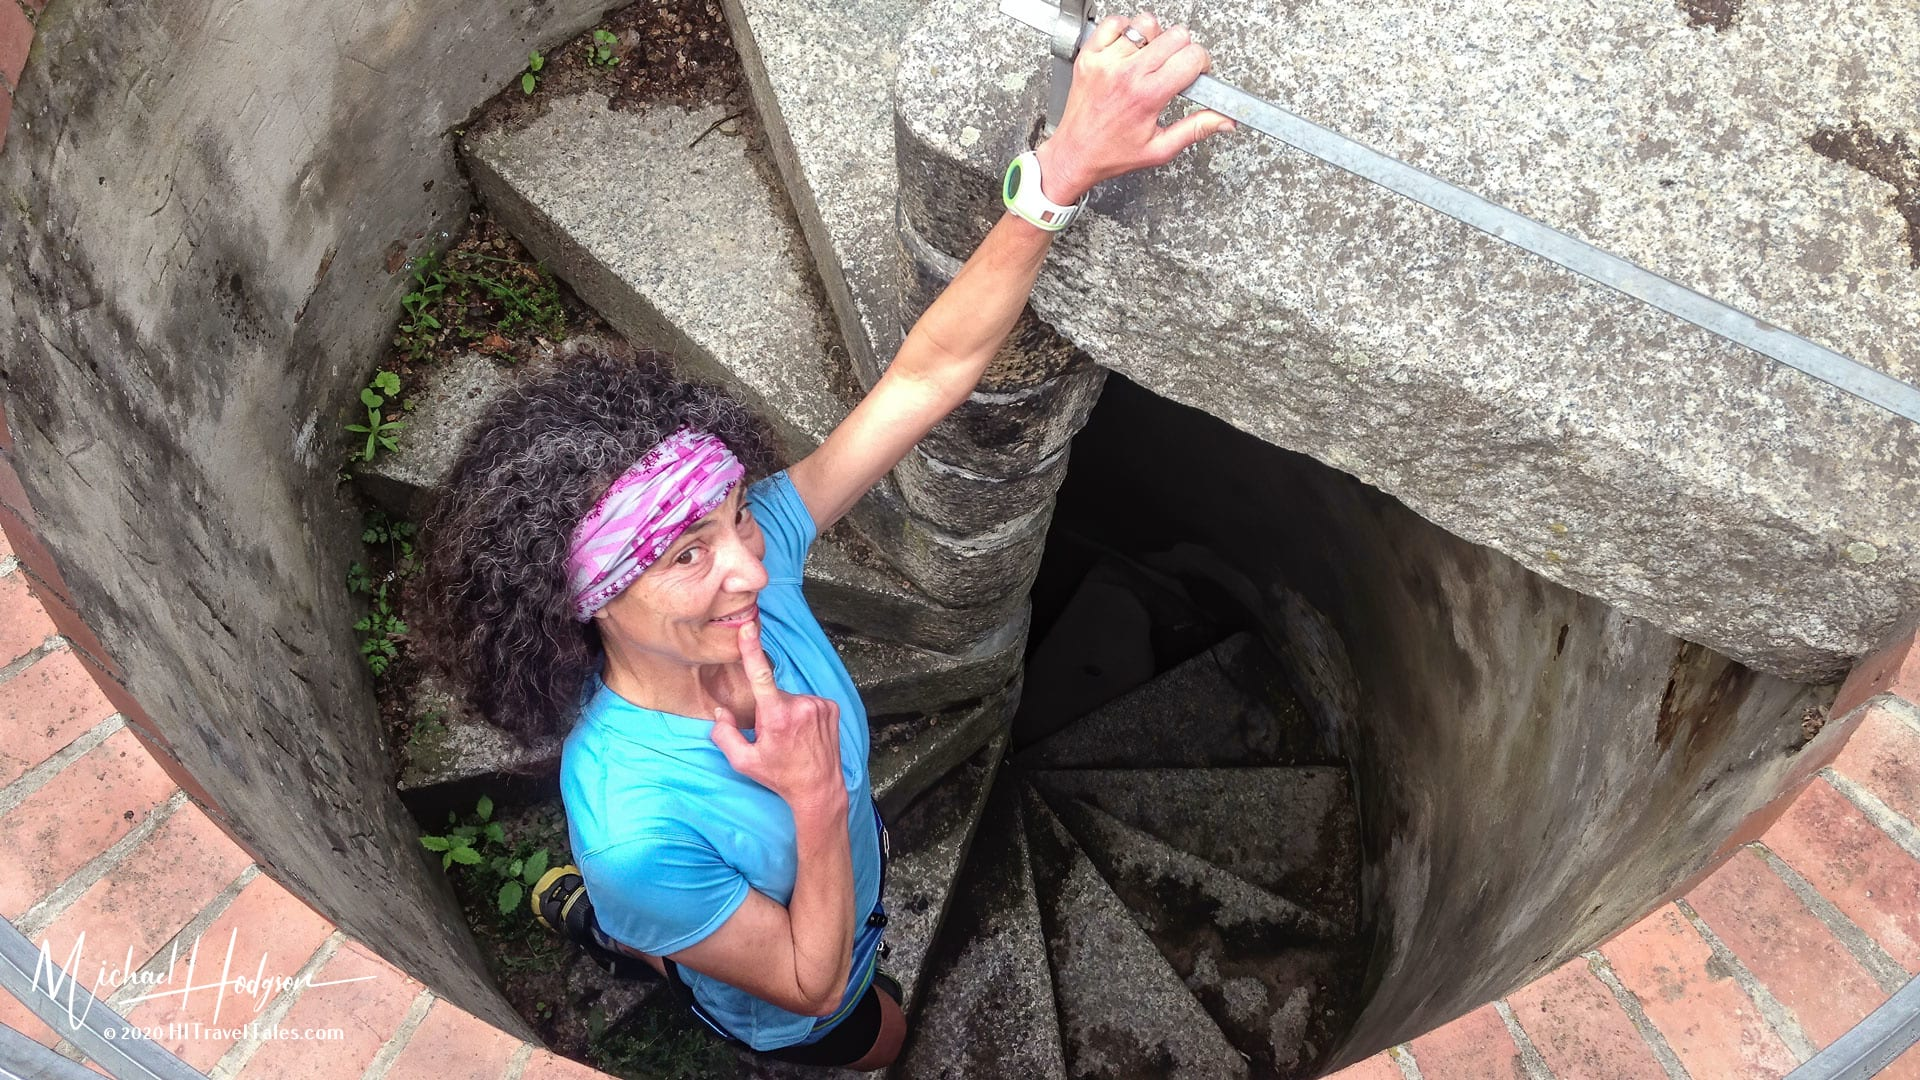 Therese Iknoian On The Stairs In The Quedlinburg Old Watch Tower